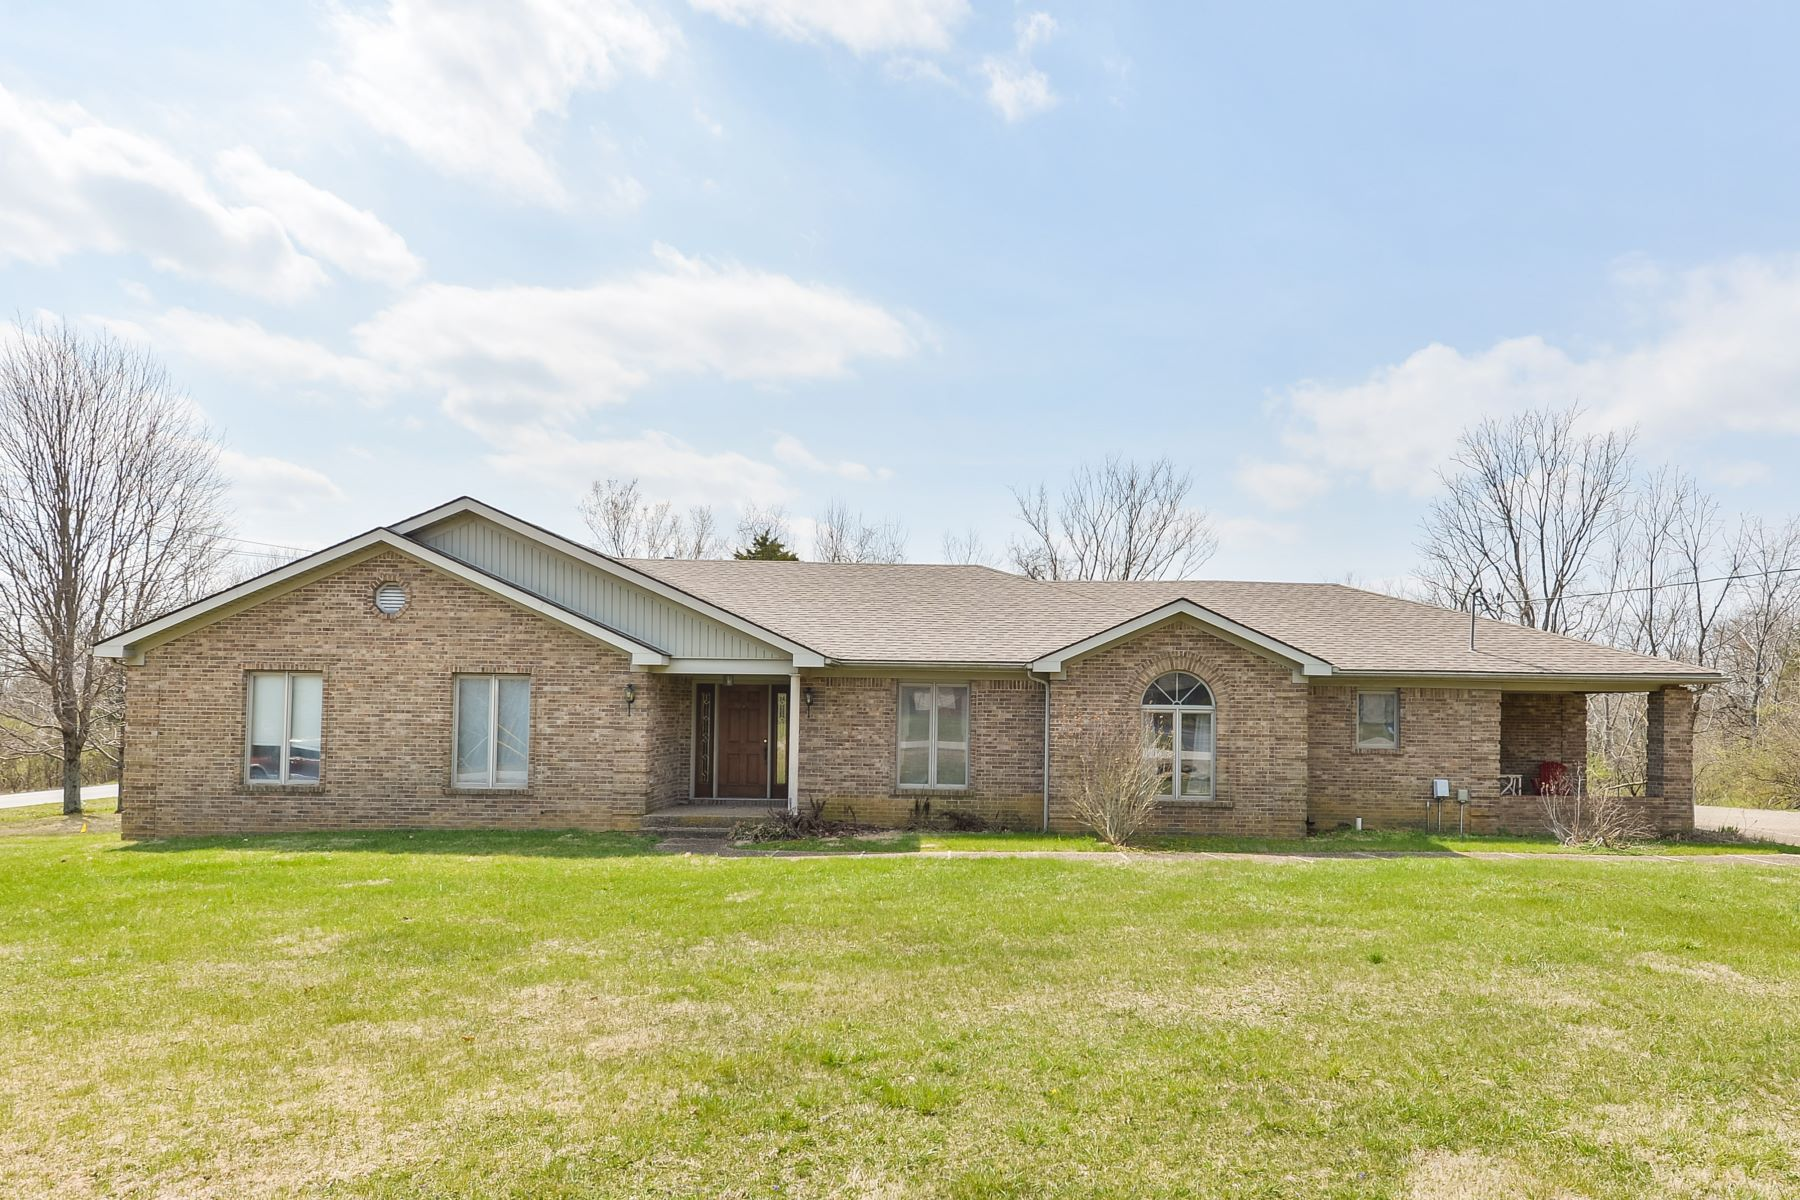 Single Family Home for Sale at 3512 Pin Oak Drive Lagrange, Kentucky 40031 United States